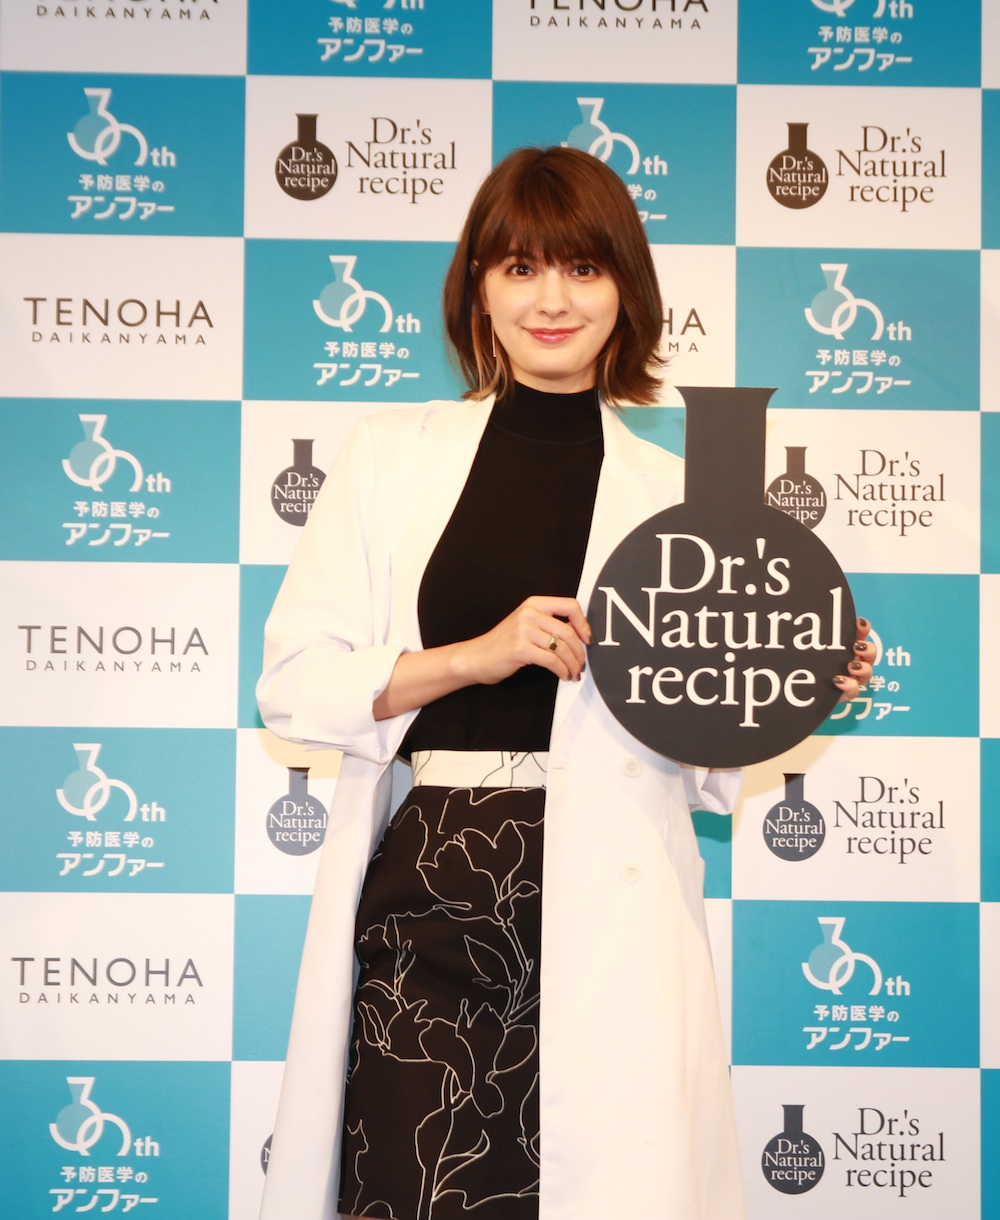 マギー・Dr.'s Natural recipe